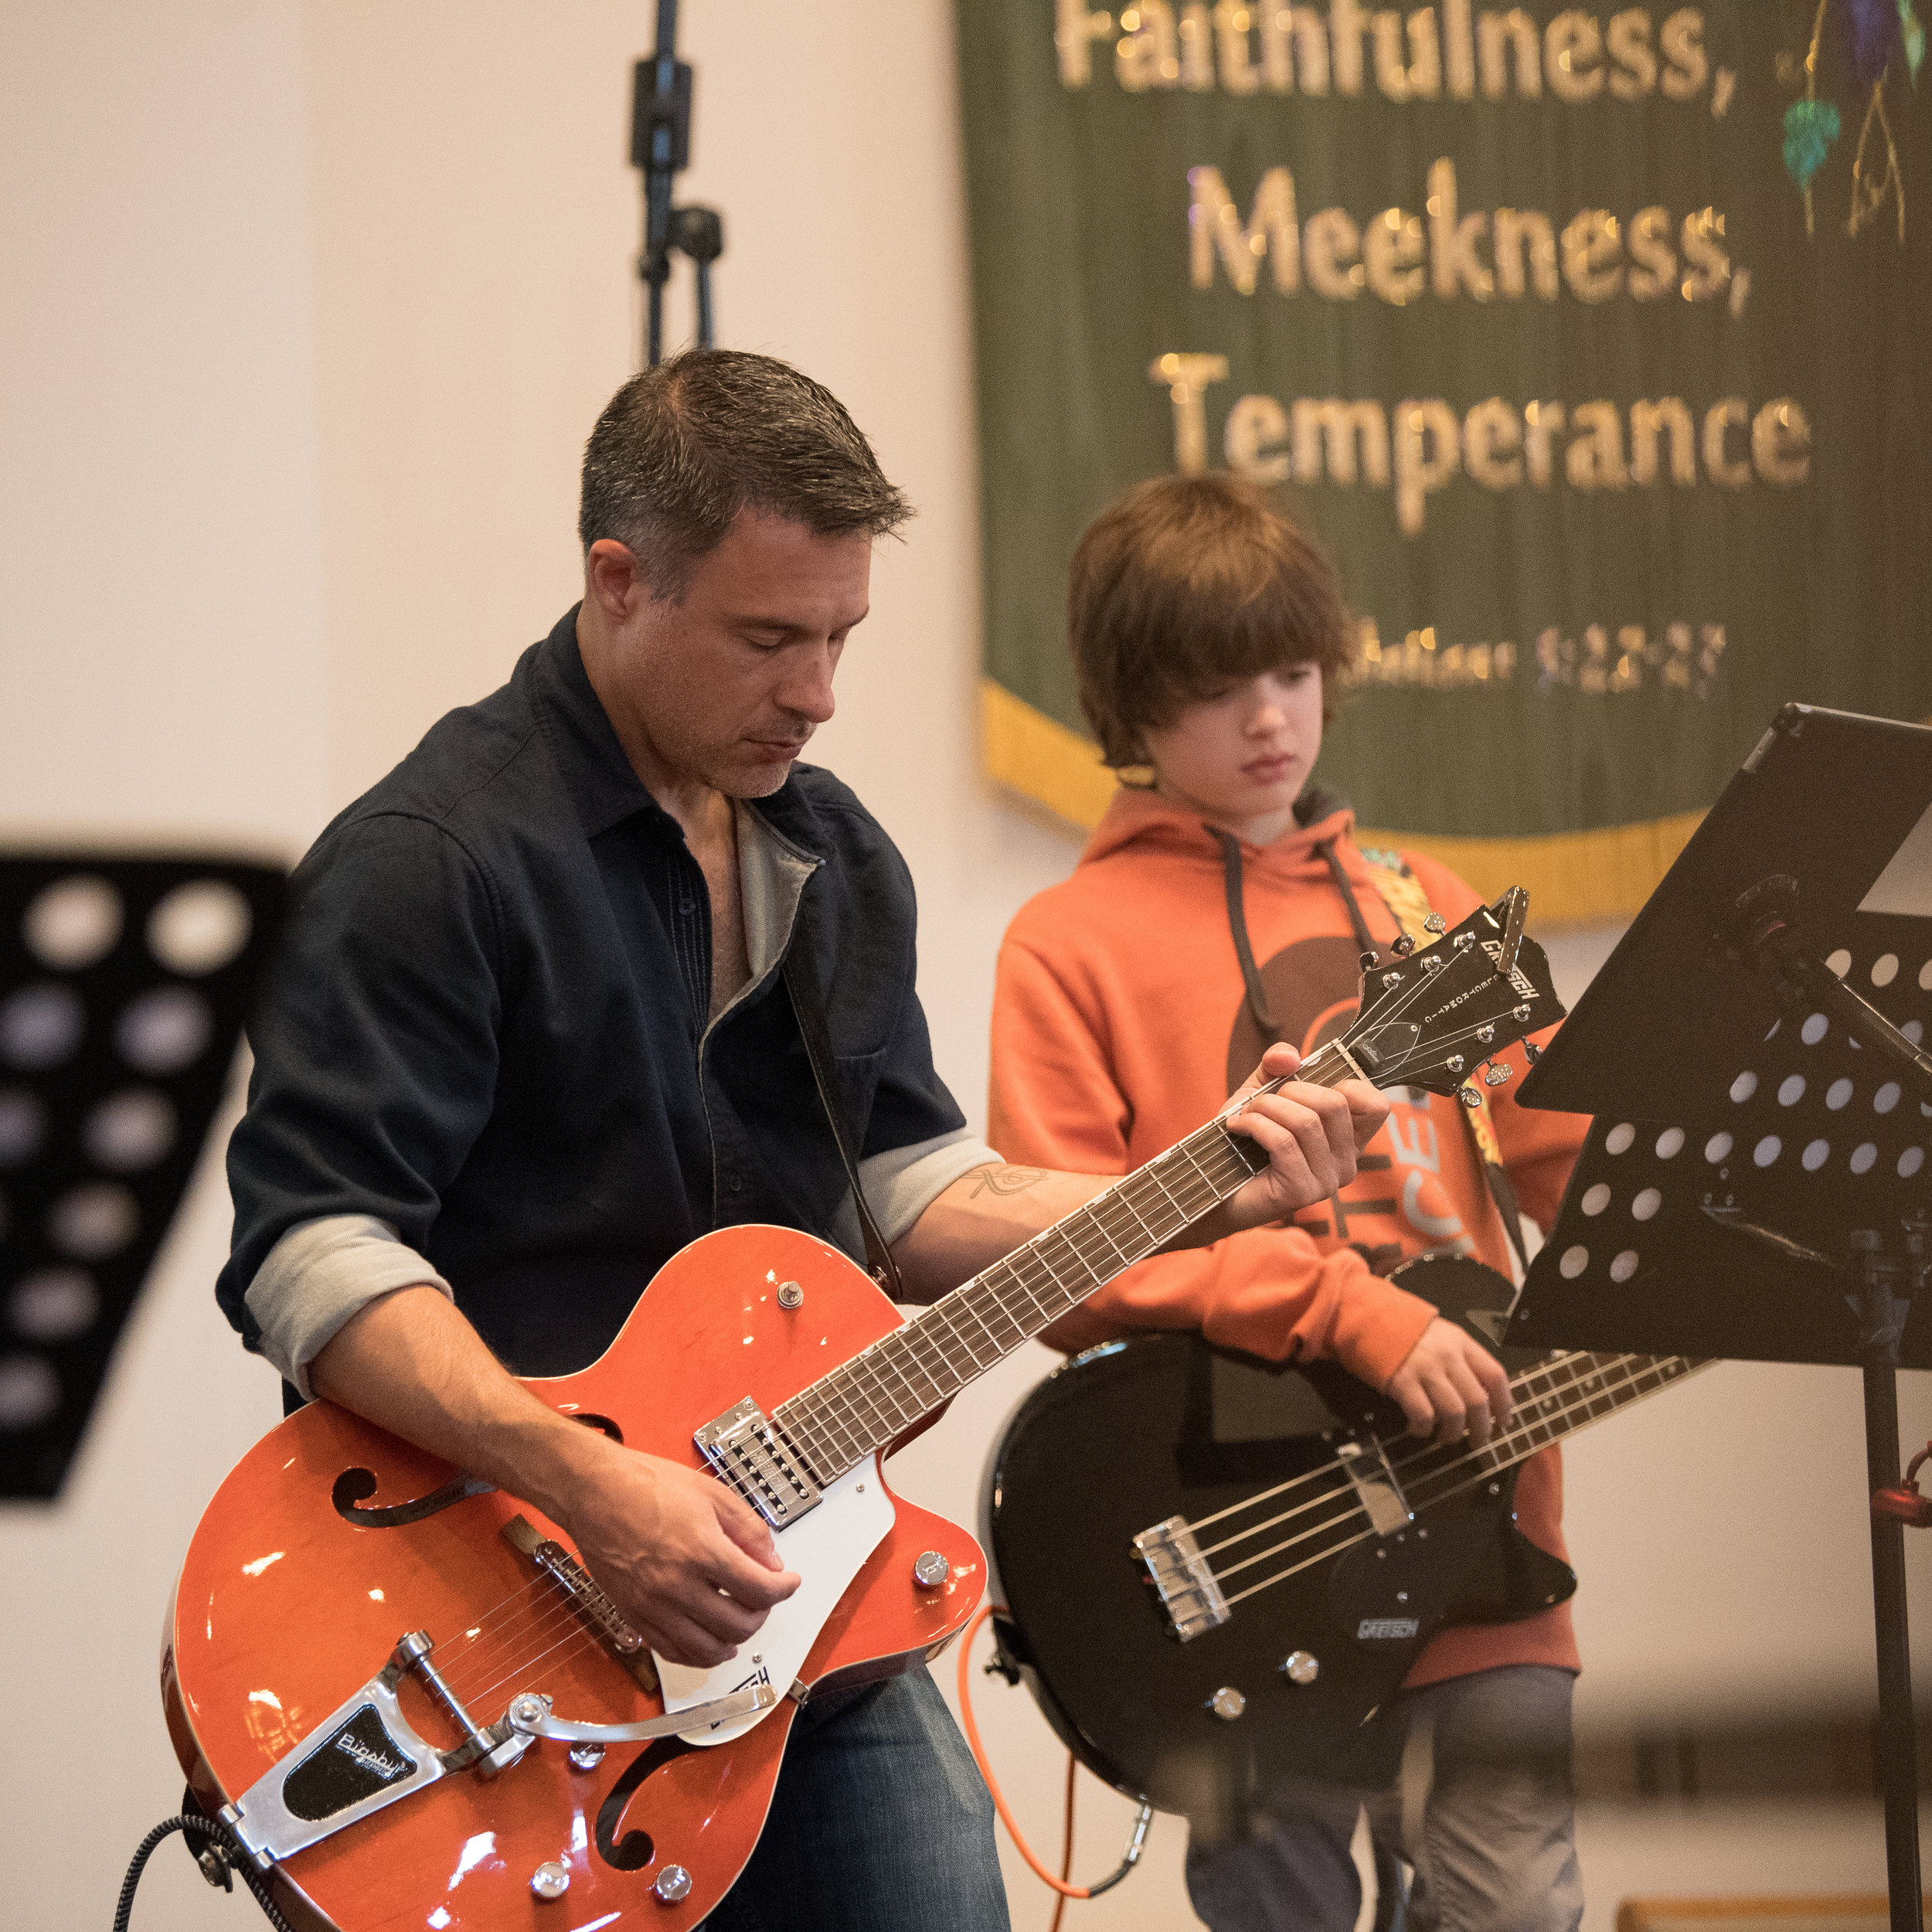 During our service, you will experience great musicfrom our band and Bible-based teaching from one of our pastors.TreeHouse Kids provides a fun and safe place for 2 year oldsto 5th graders to discover more about God.From our nursery, you can both see and hearthe entire service in a space whereyour littlest ones will be comfortable. -